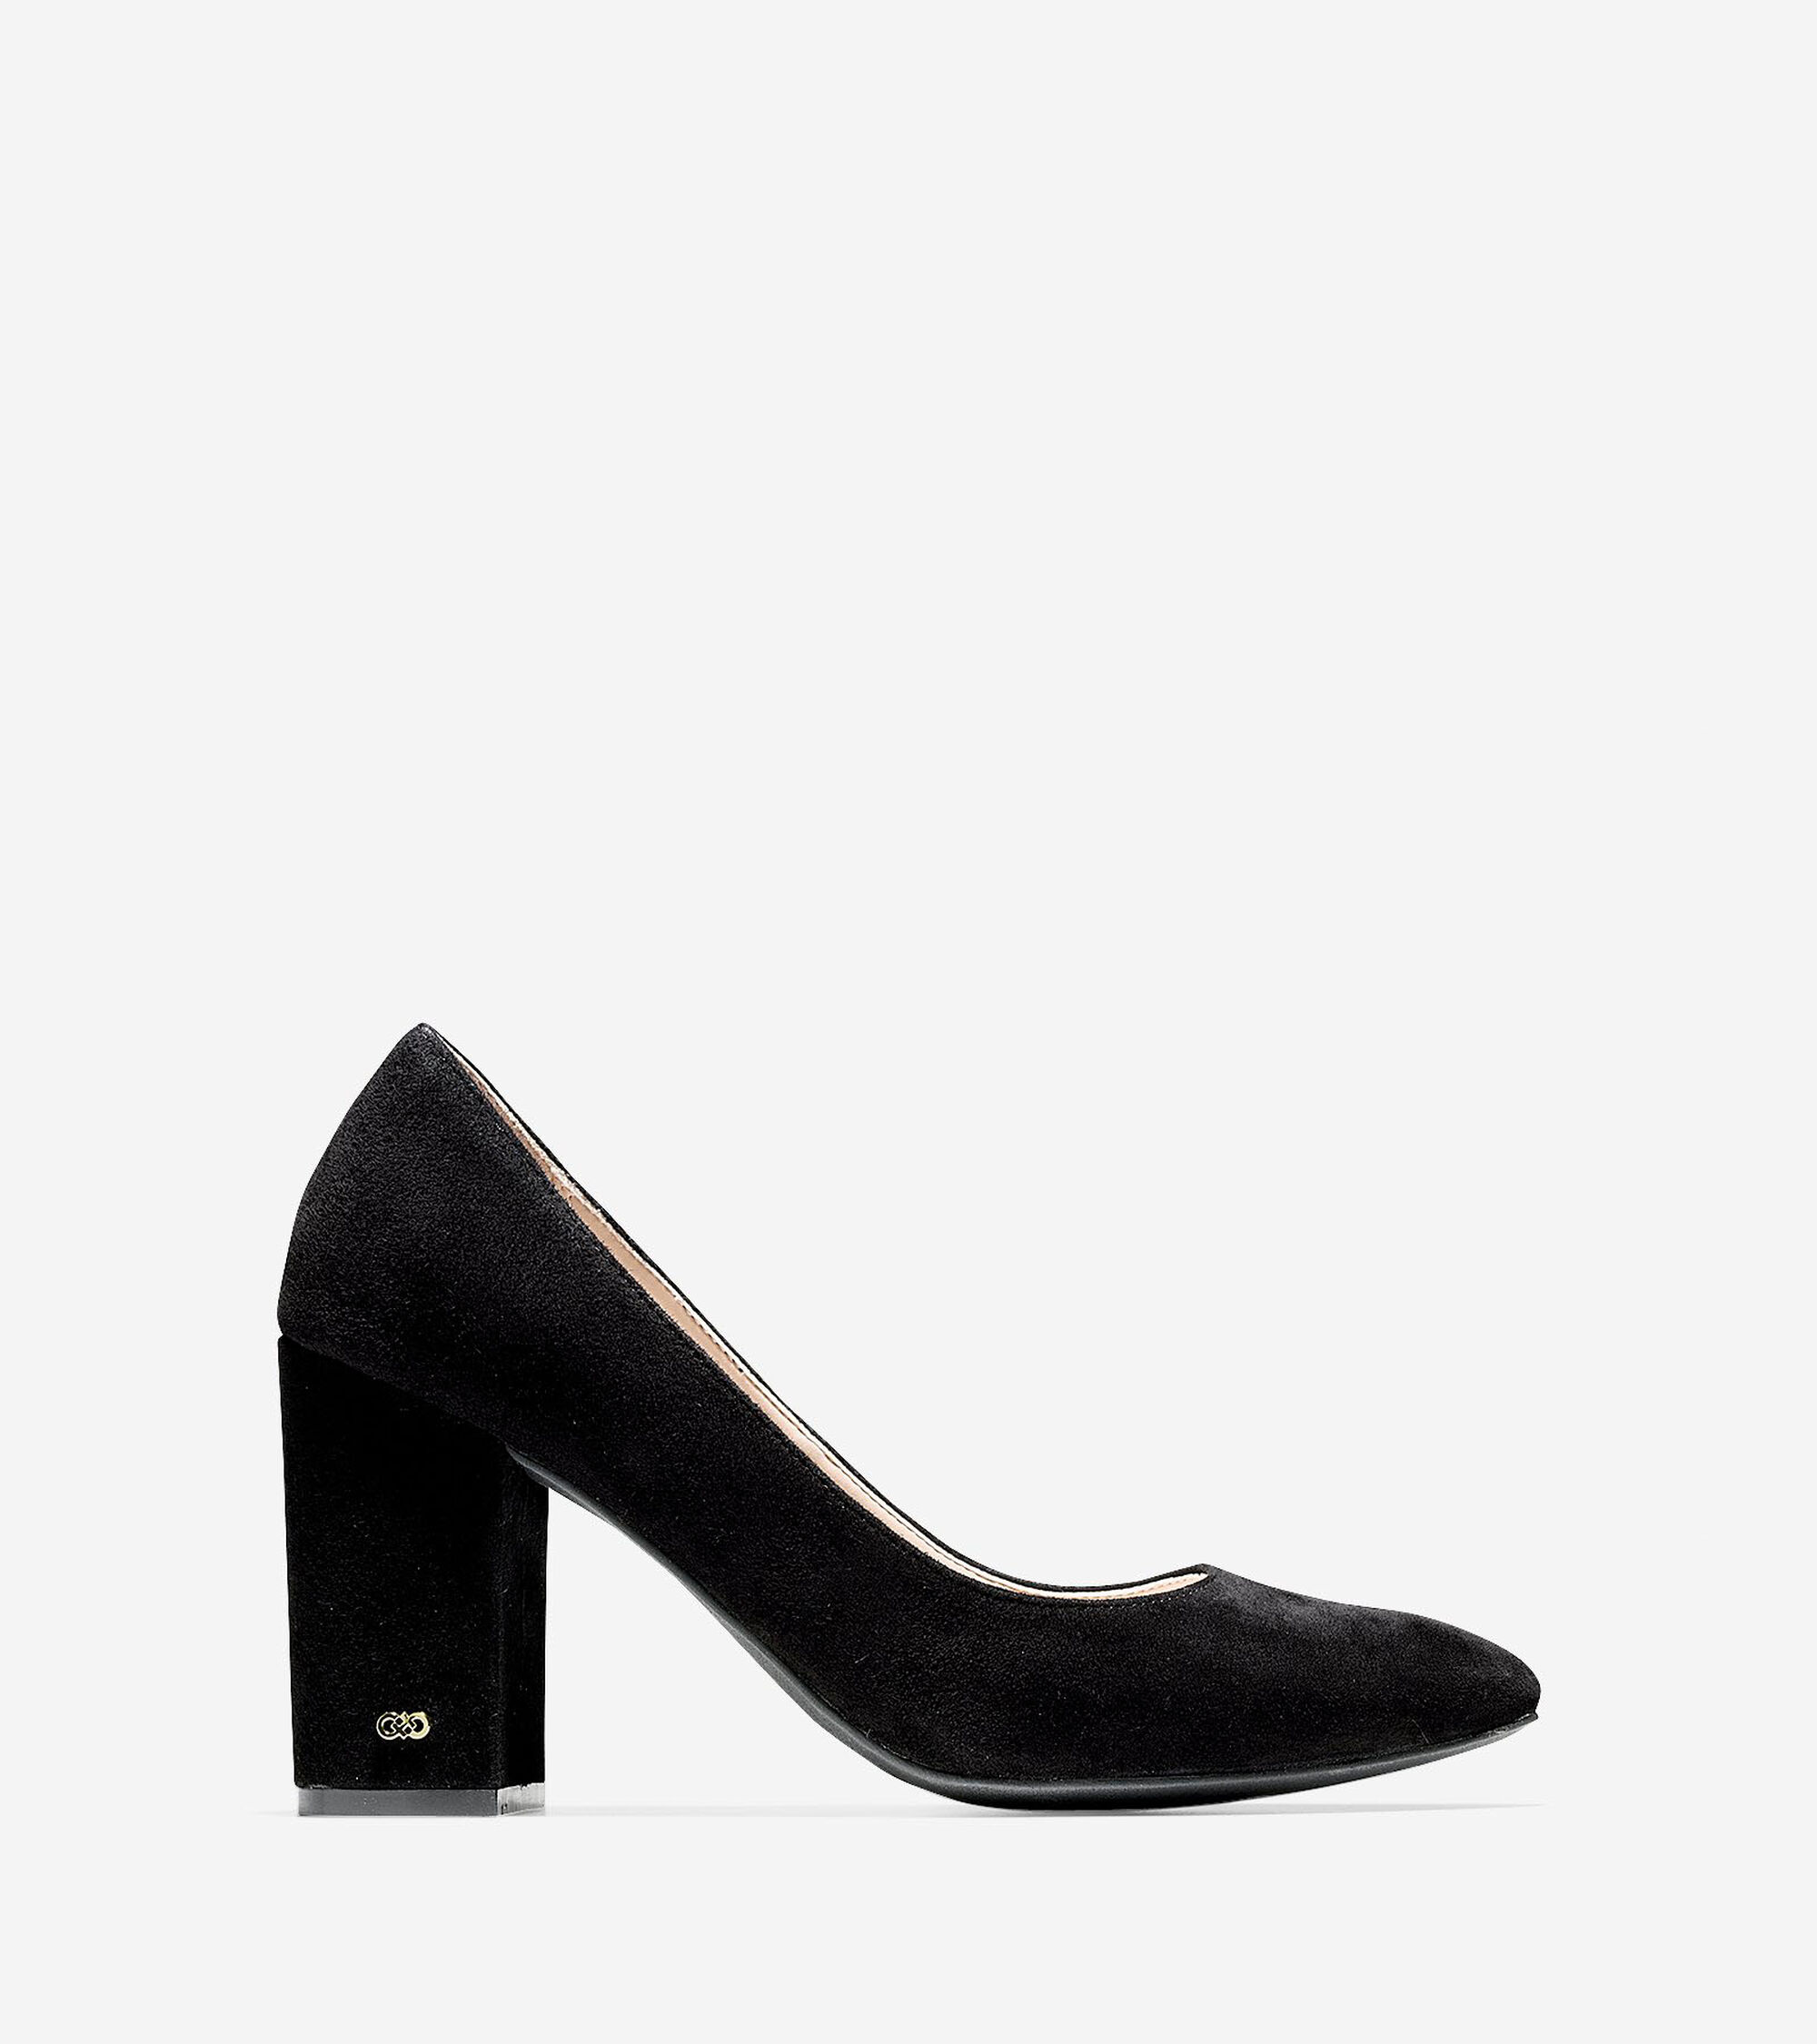 305a096ec83 Women s Alanna Pumps 85mm in Black Suede   Sale